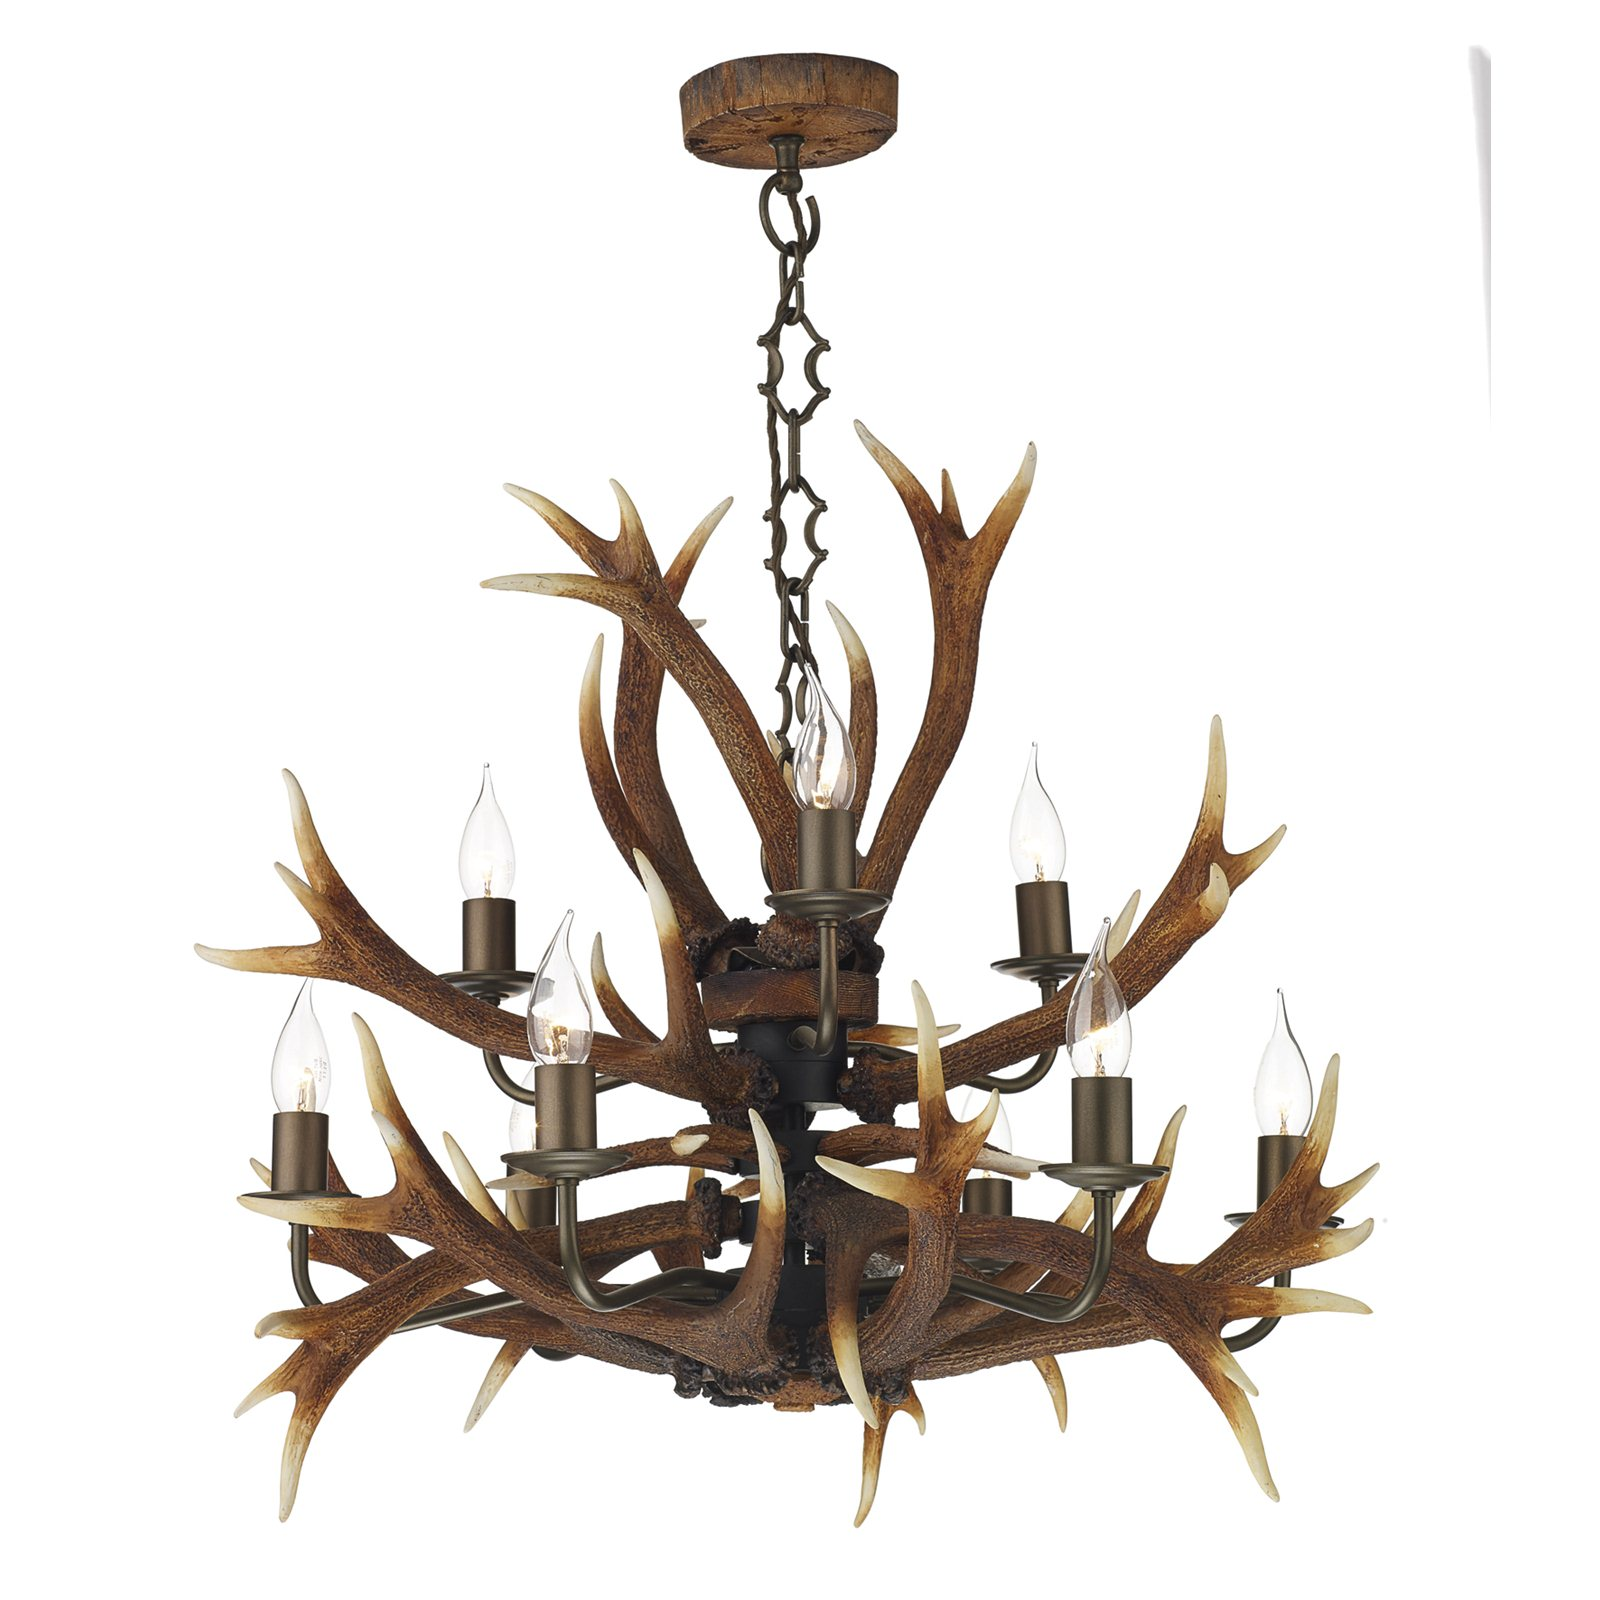 Hicks and hicks antler tiered pendant light 9 hicks hicks aloadofball Choice Image